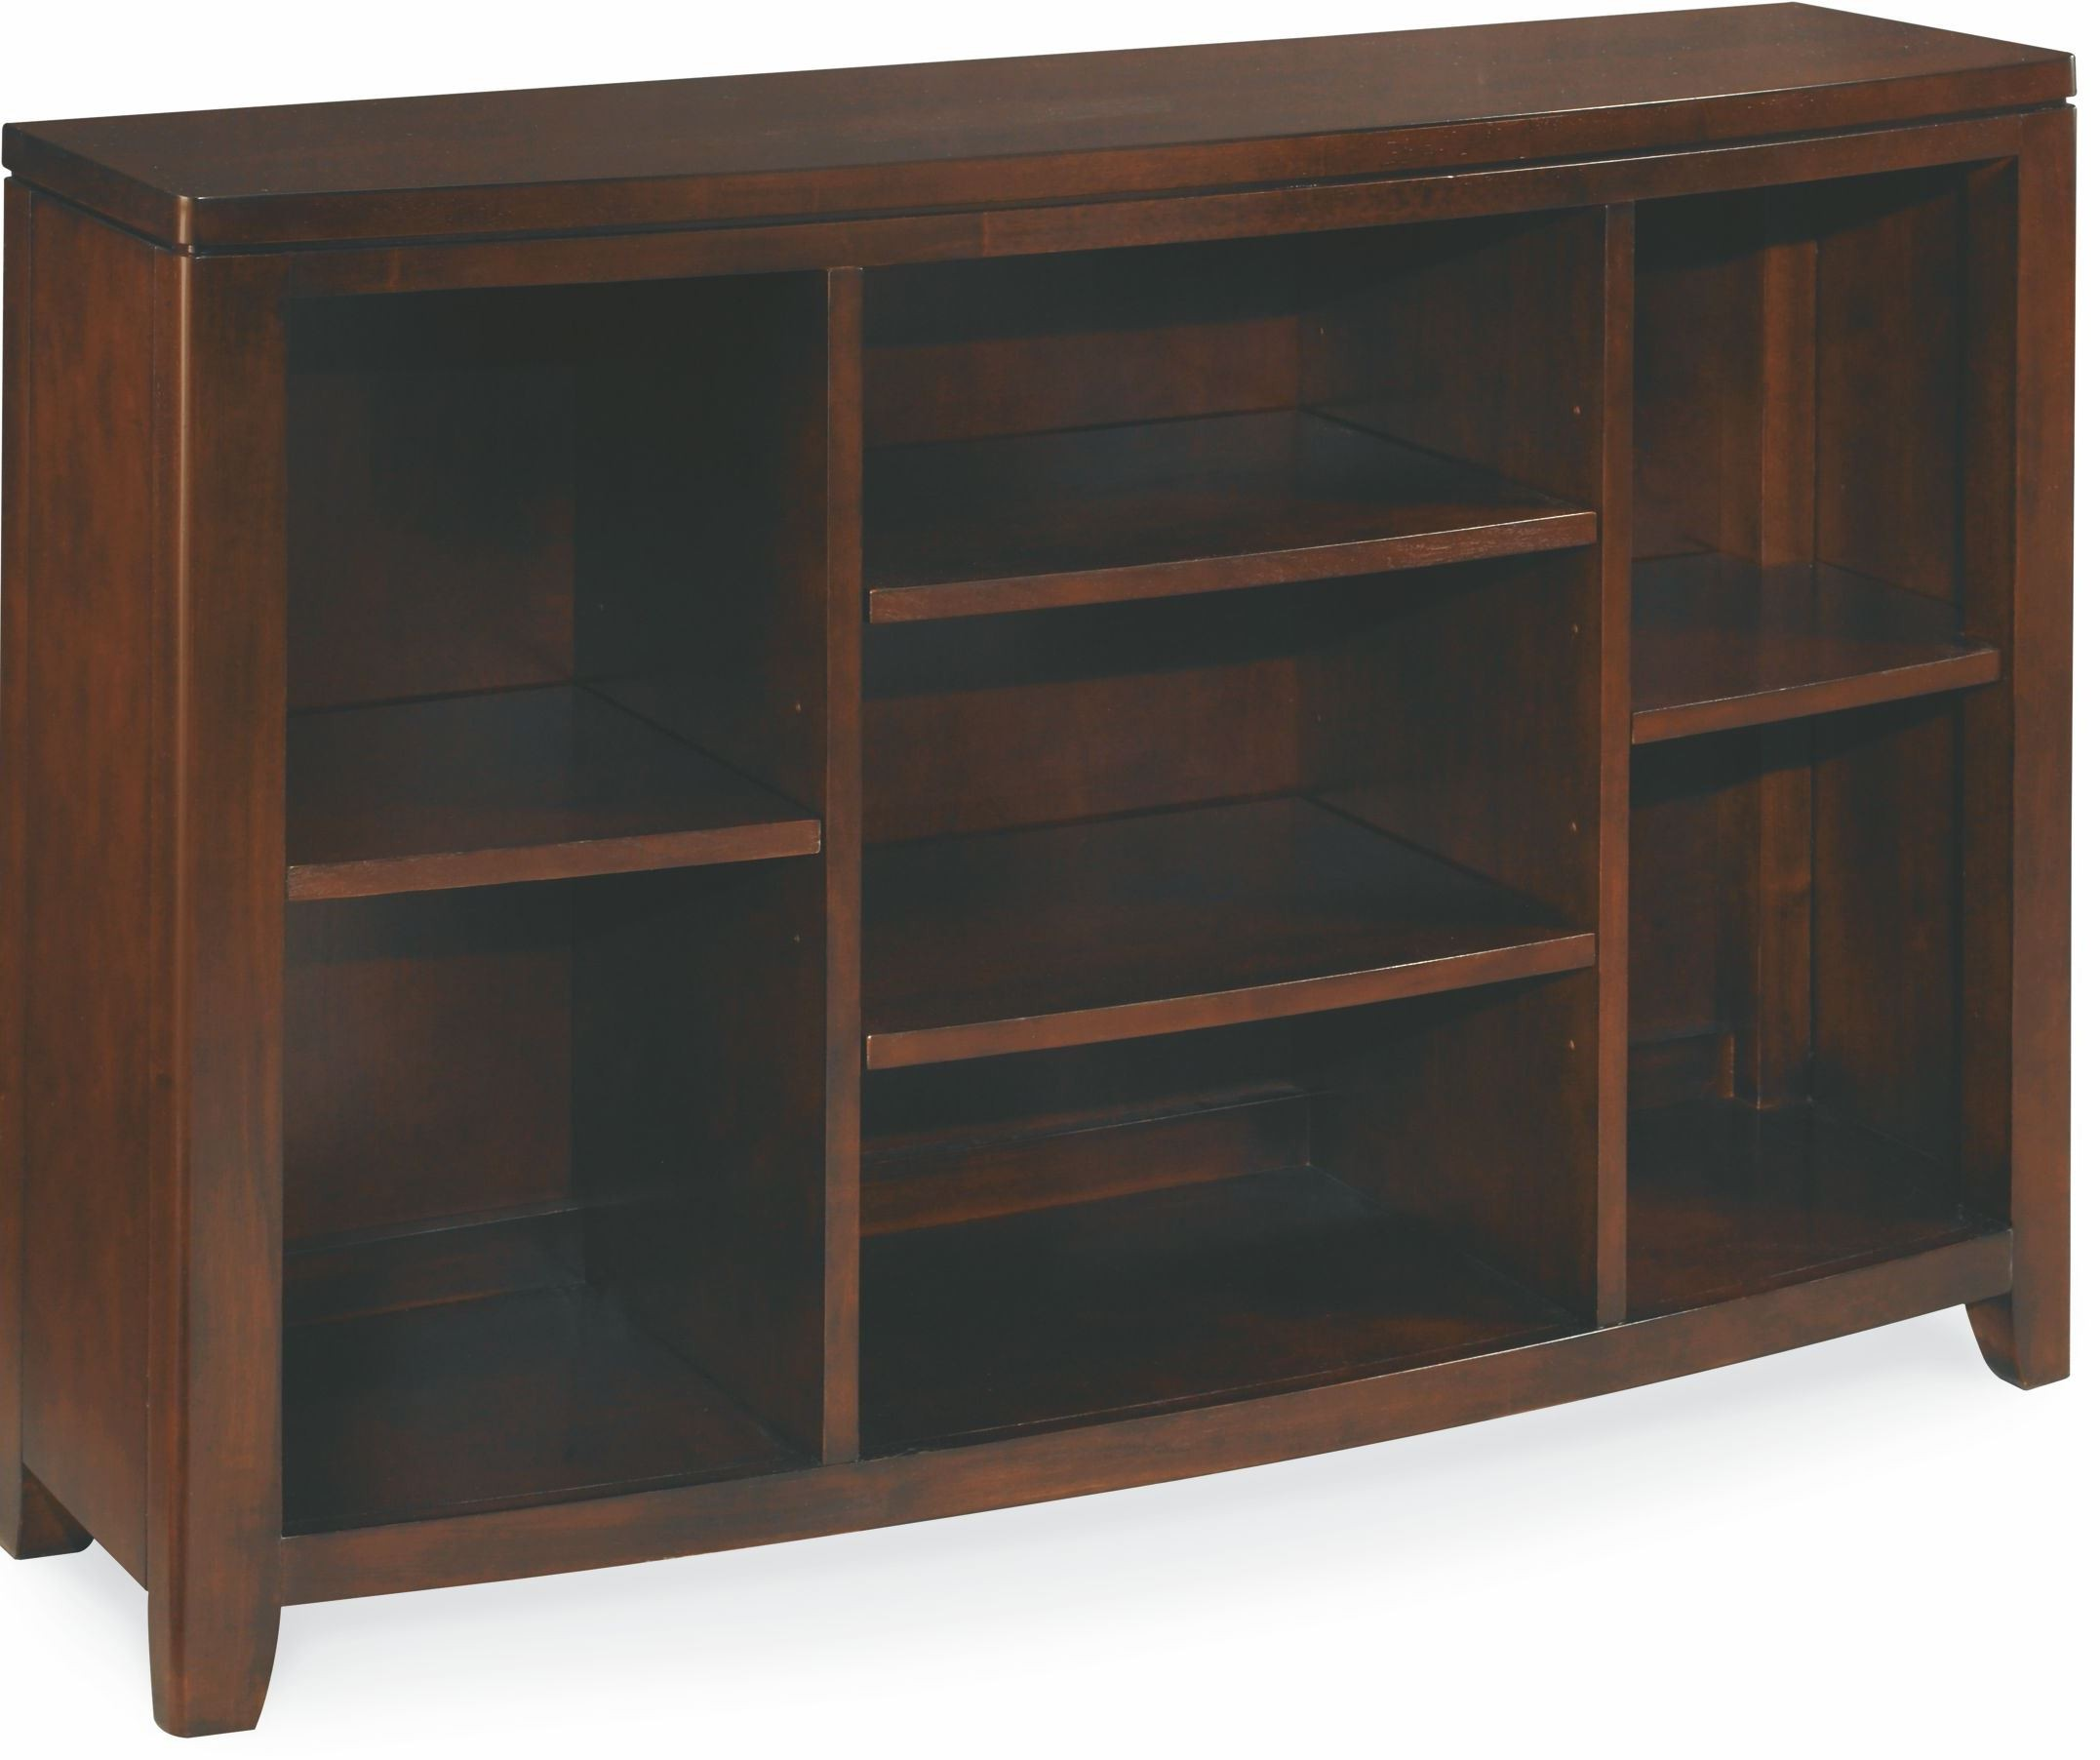 Tribecca Root Beer Bookcase Console from American Drew